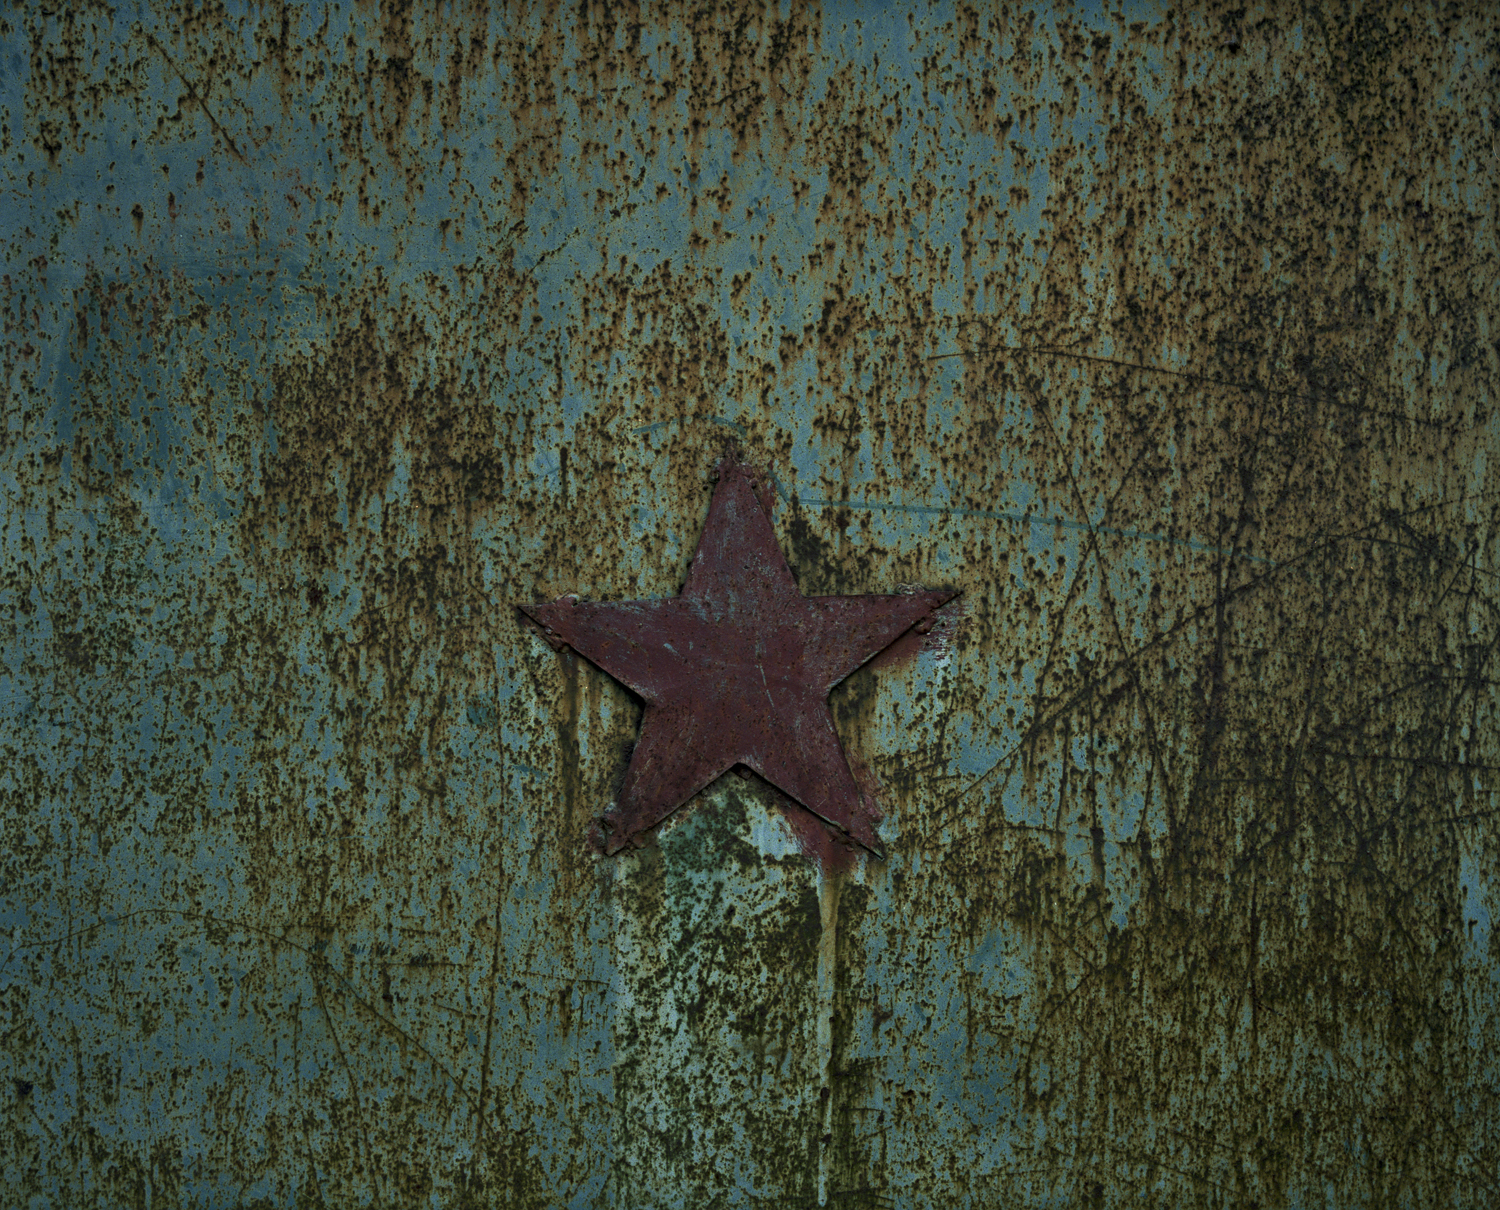 Red star on the gate.